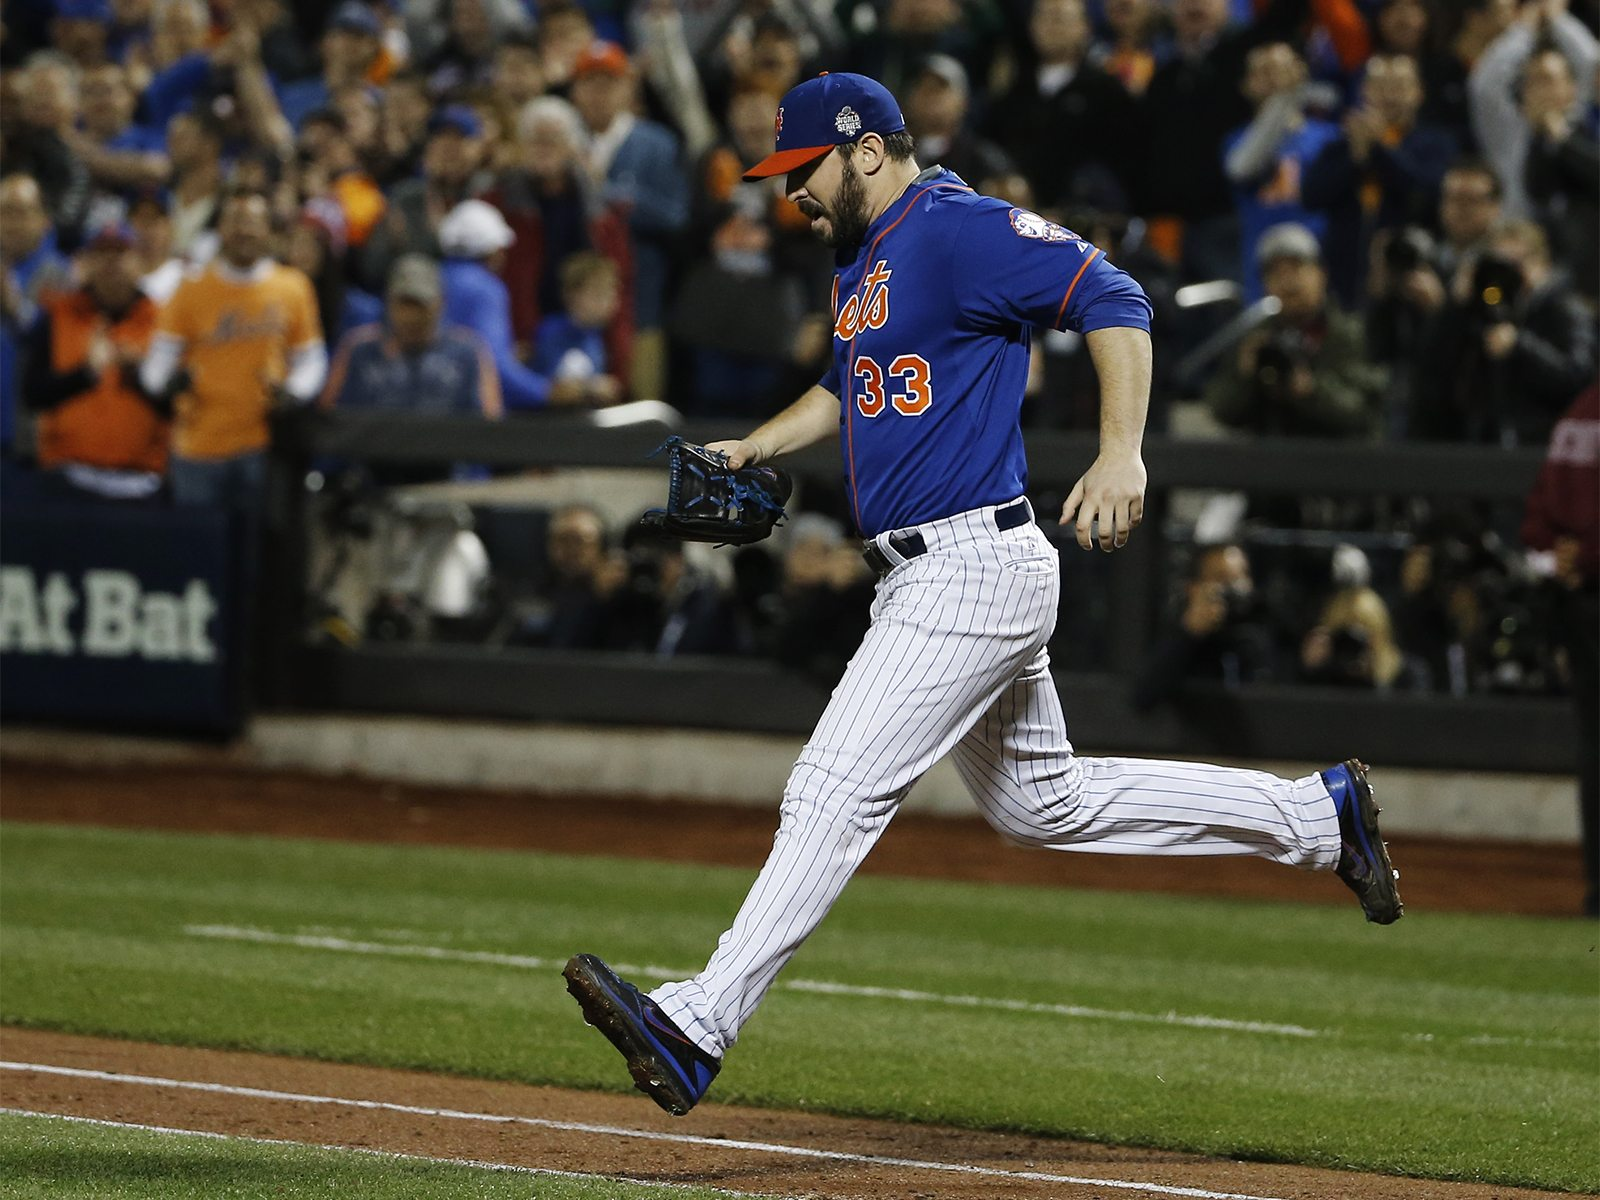 New York Mets pitcher Matt Harvey sprints out to the mound for the ninth inning of Game 5 of the Major League Baseball World Series against the New York Mets Sunday, Nov. 1, 2015, in New York. (AP Photo/Matt Slocum)